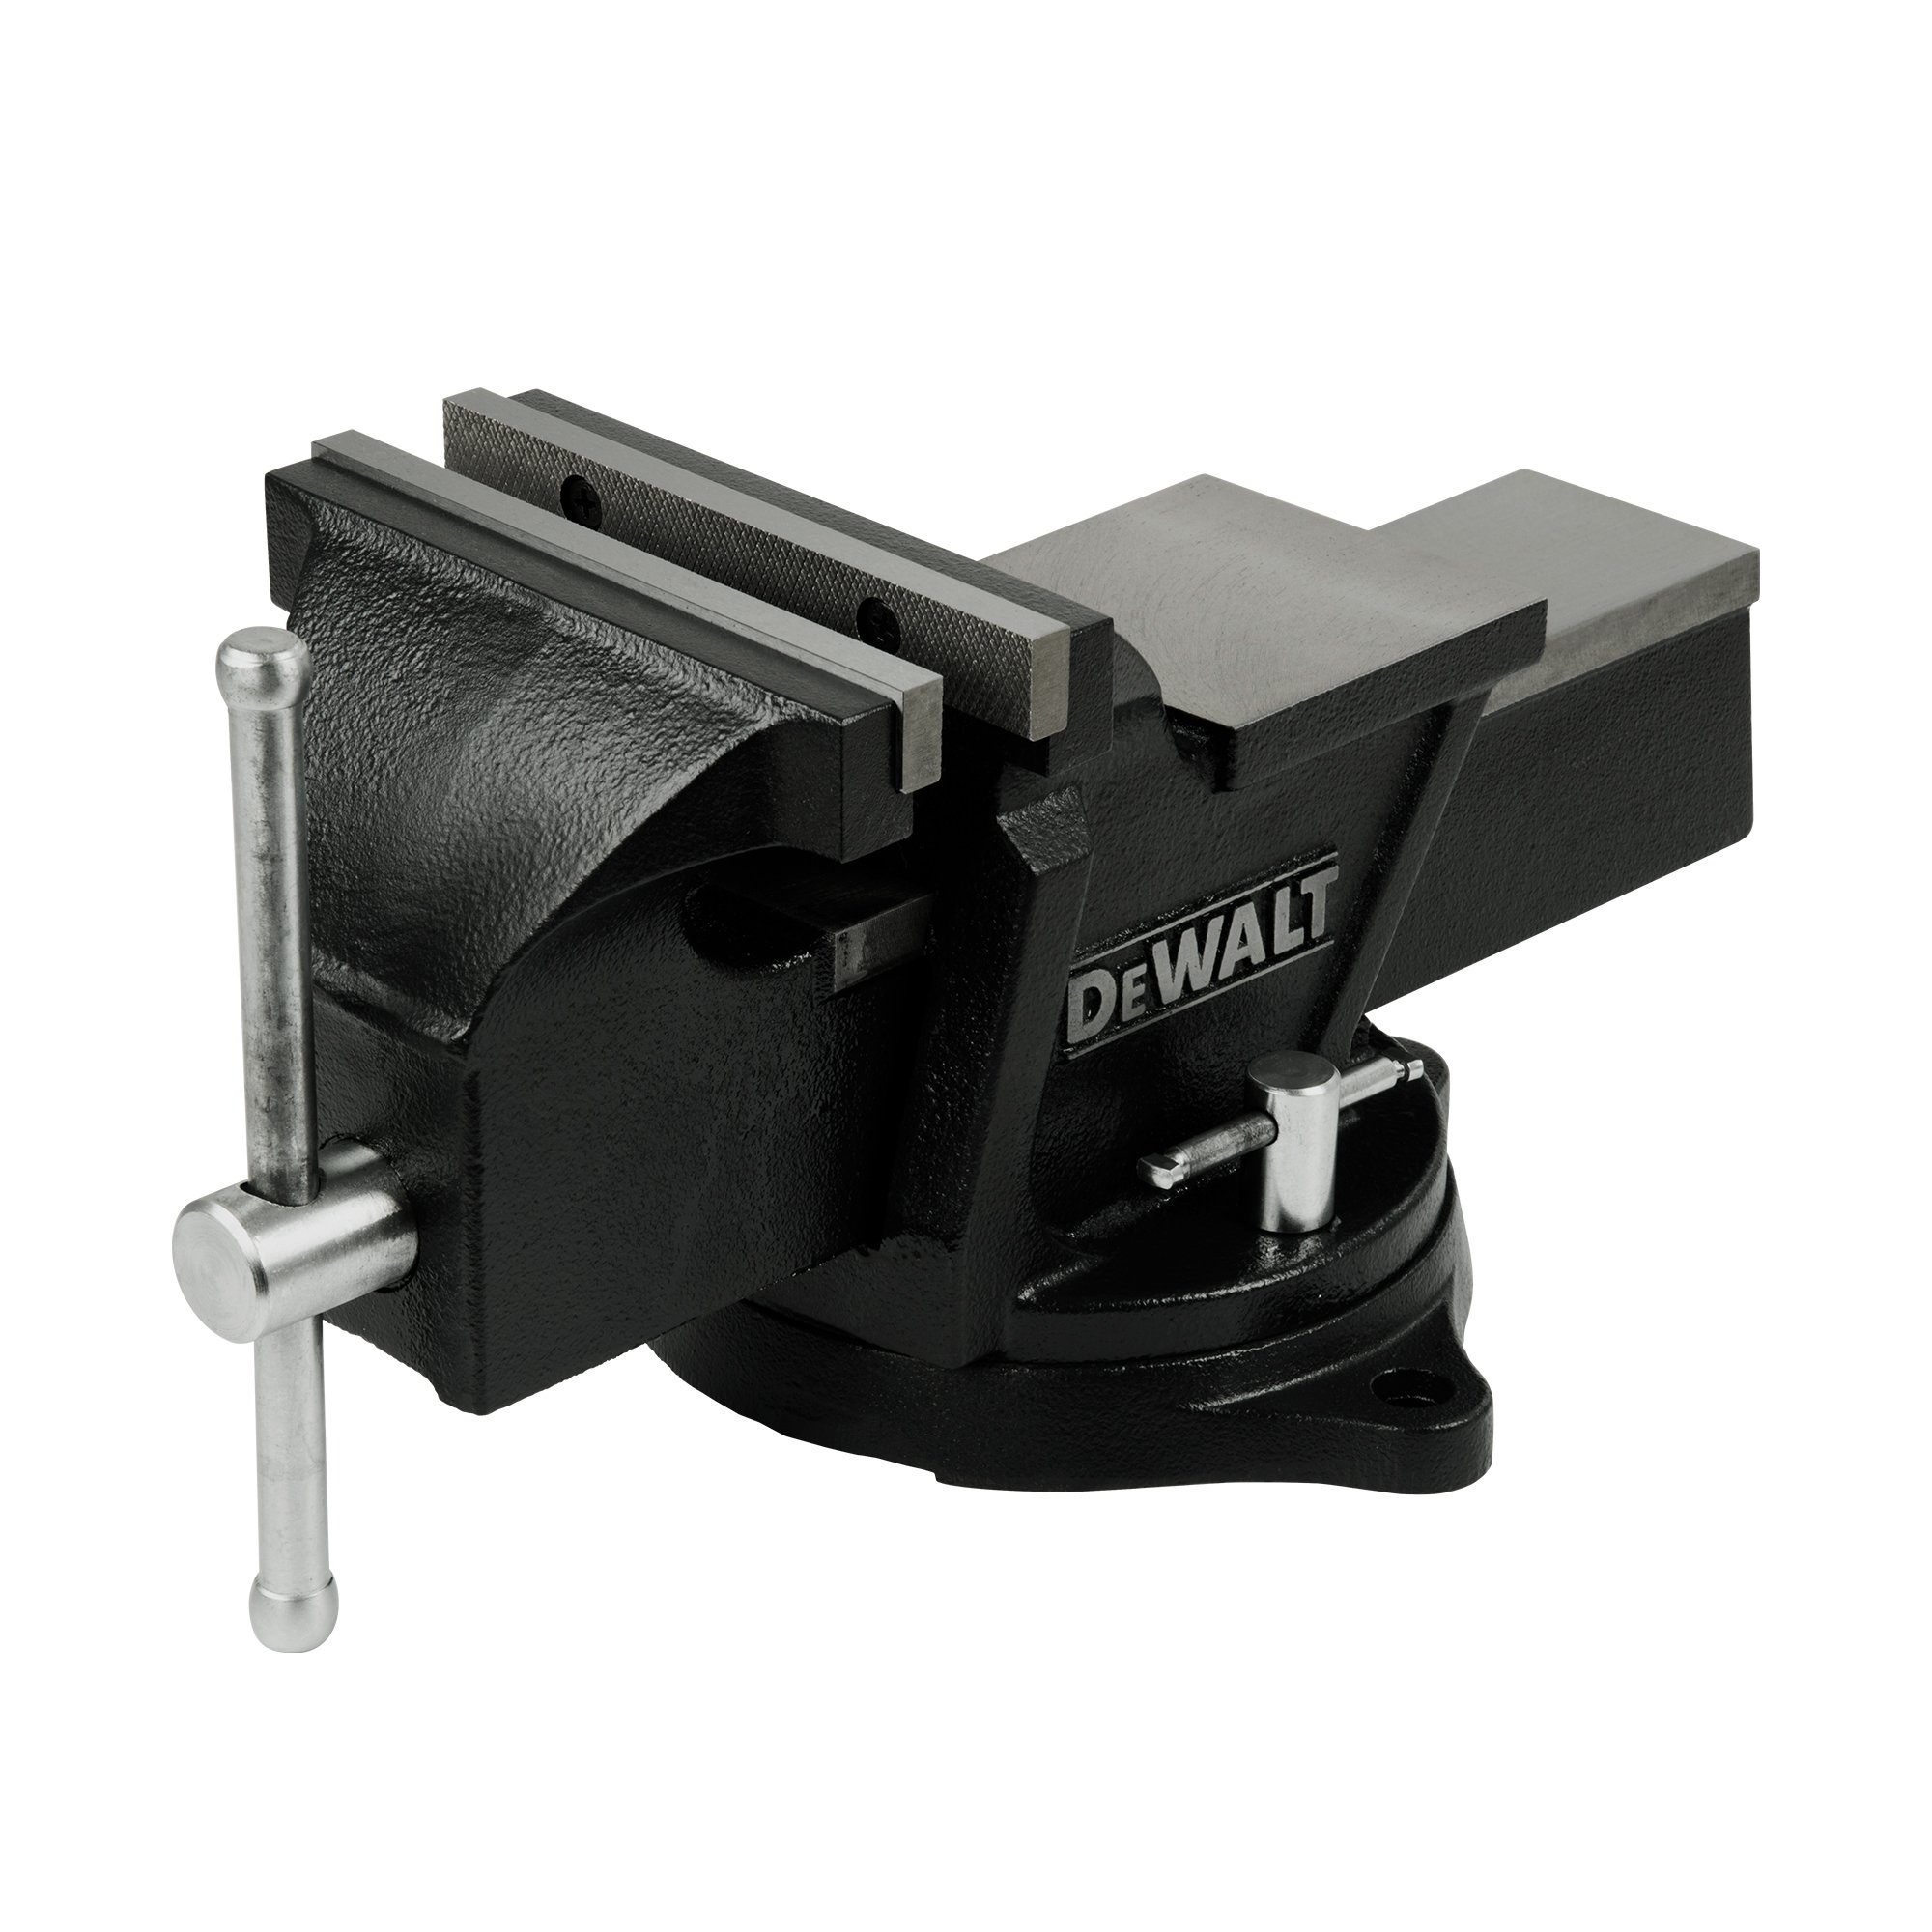 DeWalt DXCMBV6 6 In. Heavy-Duty Bench Vise with Swivel Base